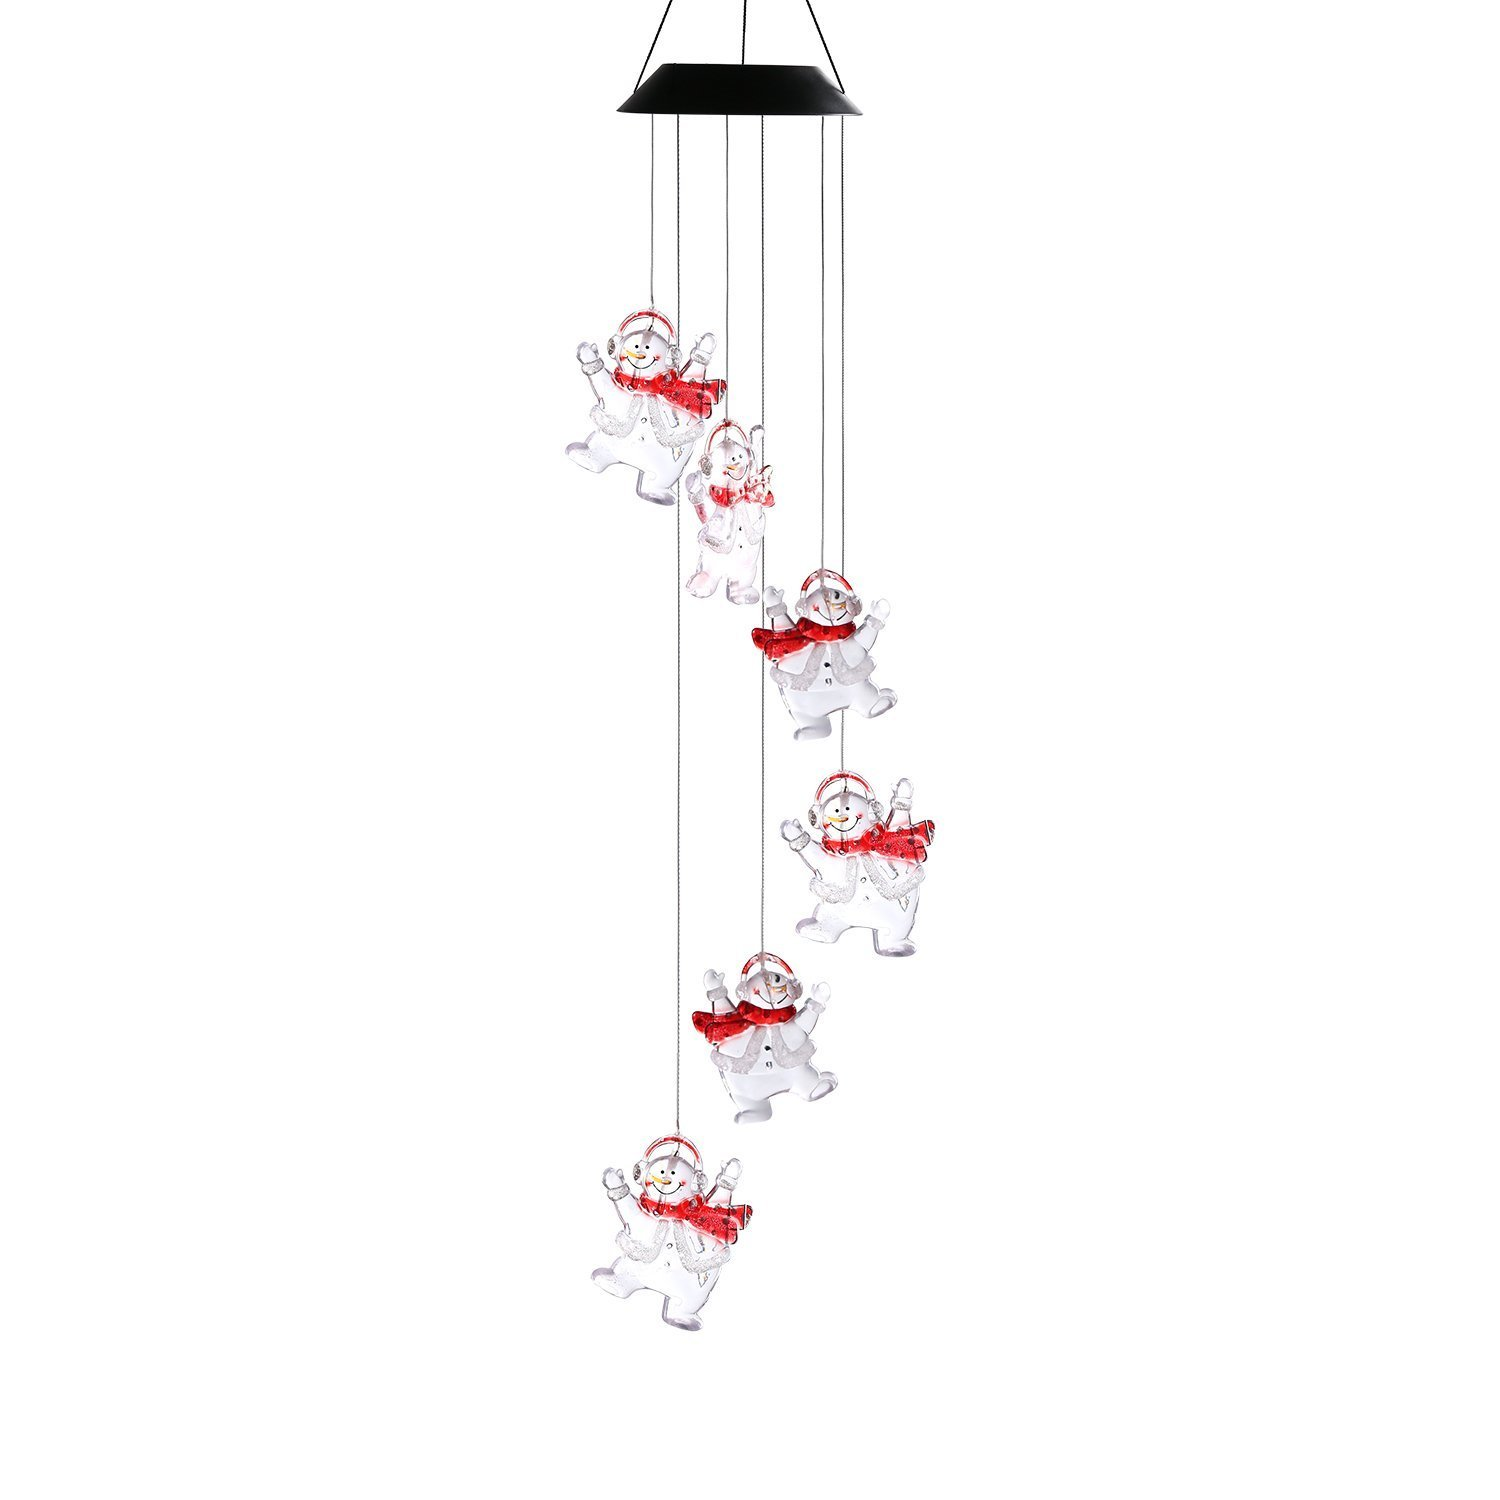 Multi Color Solar Powered Christmas Snowman Wind Chime Mobile LED Light, Gzero Spiral Spinner Windchime Waterproof Portable Outdoor Chime for Patio, Deck, Yard, Garden, Home,Pathway